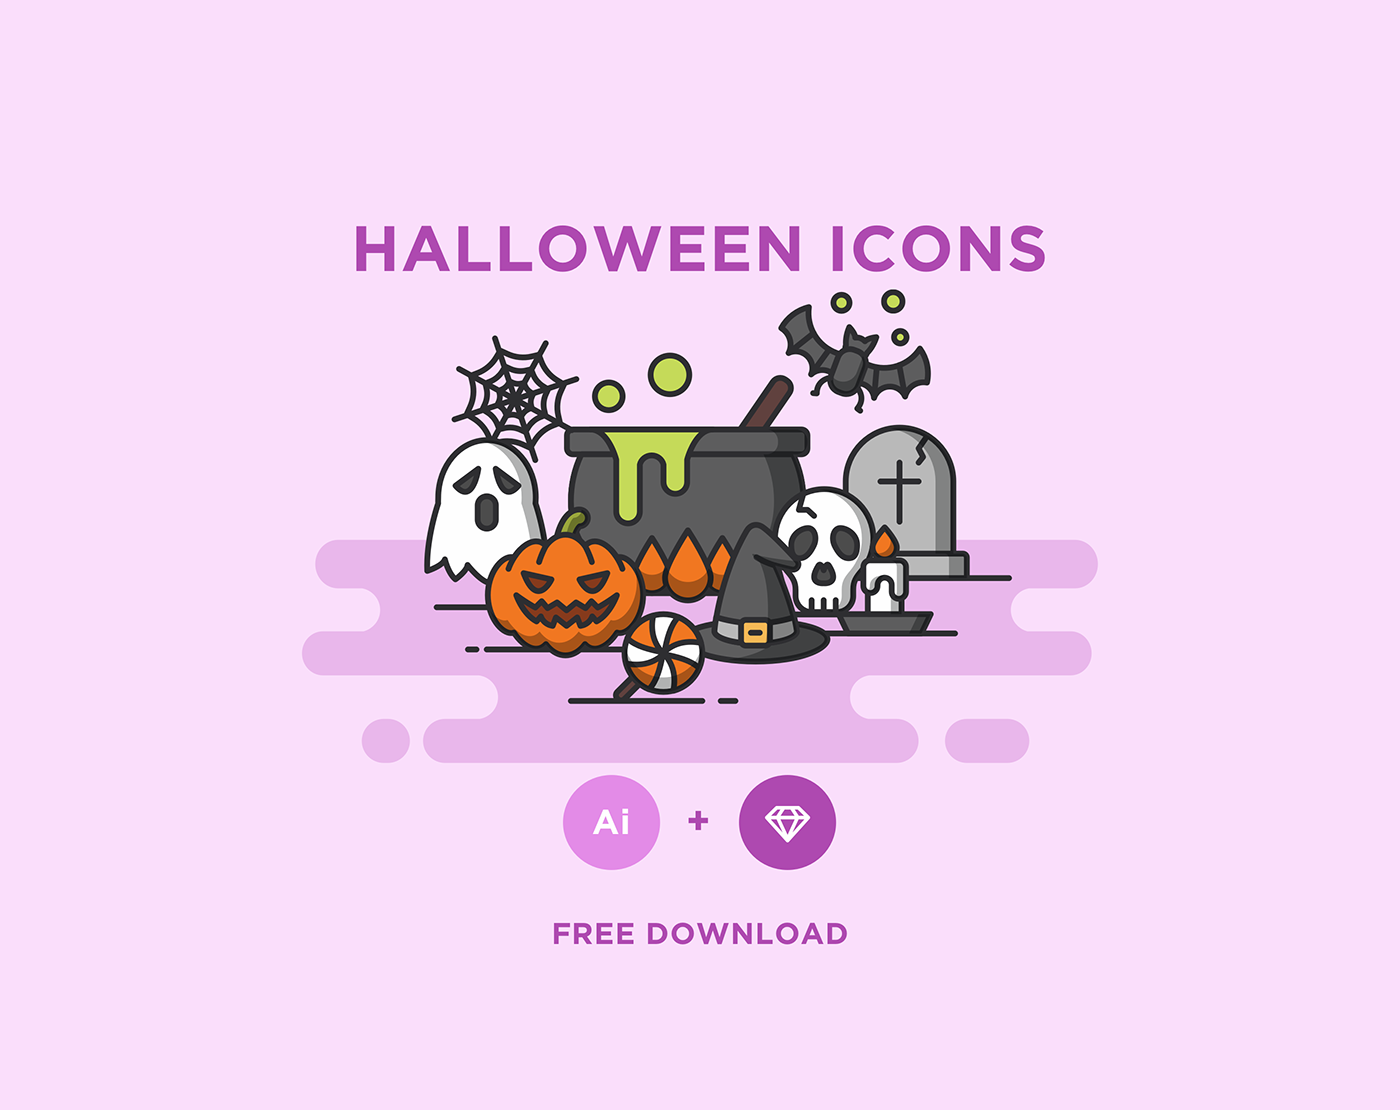 Free Download: Halloween Icons